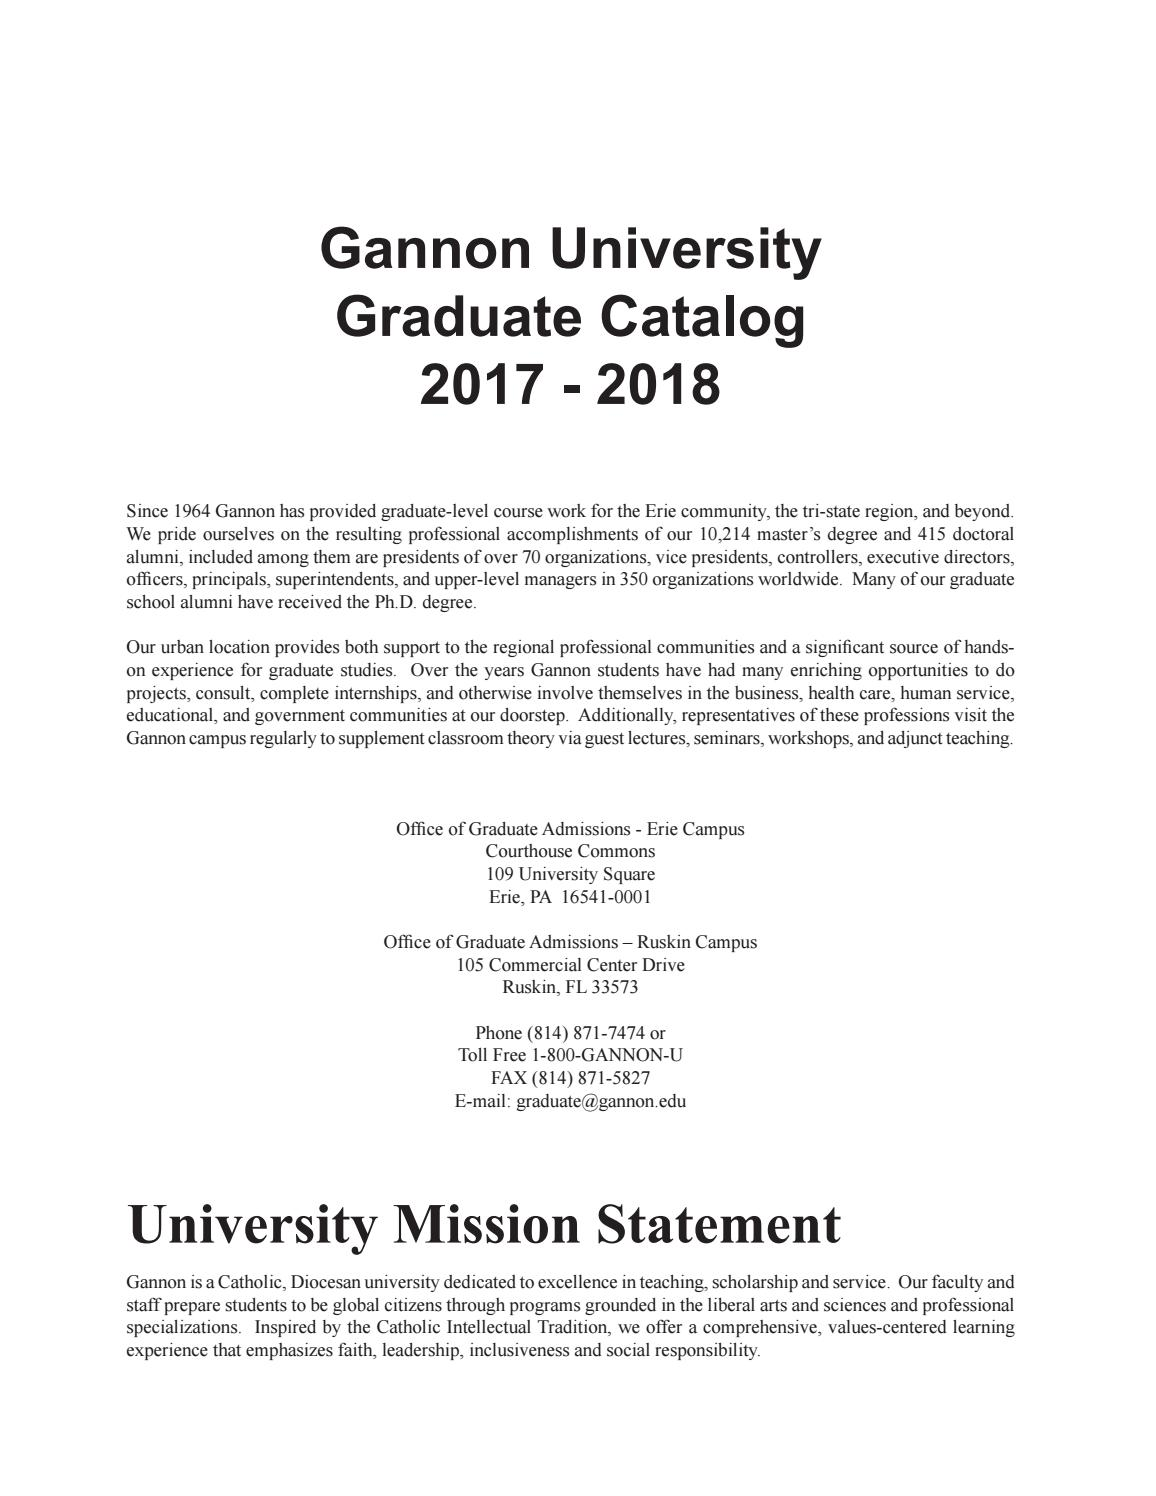 Gannon University Graduate Catalog 2017 2018 By Gannon University